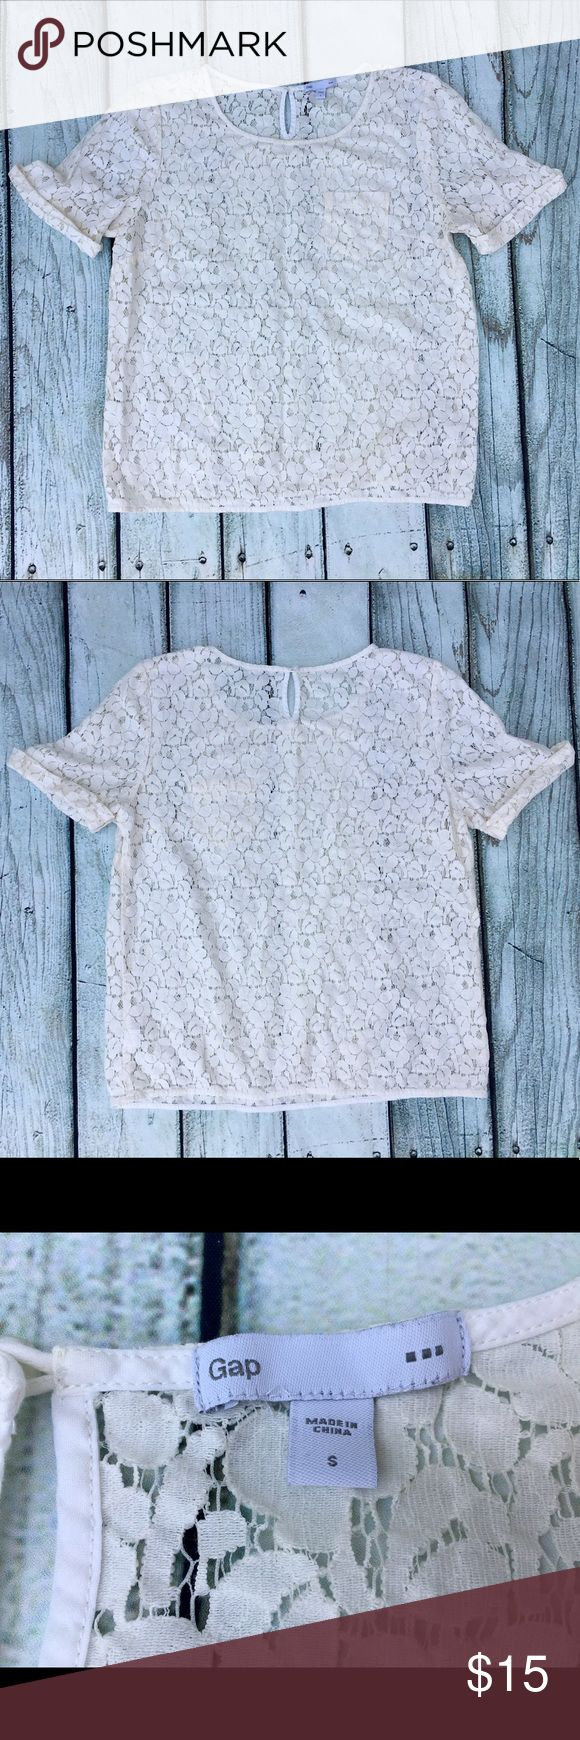 Gap cream lace short sleeve shirt Super cute Gap cream lace short folded sleeve shirt, perfect for any occasion, fancy or casual, goes great with any bottoms & shoes. GAP Tops Blouses